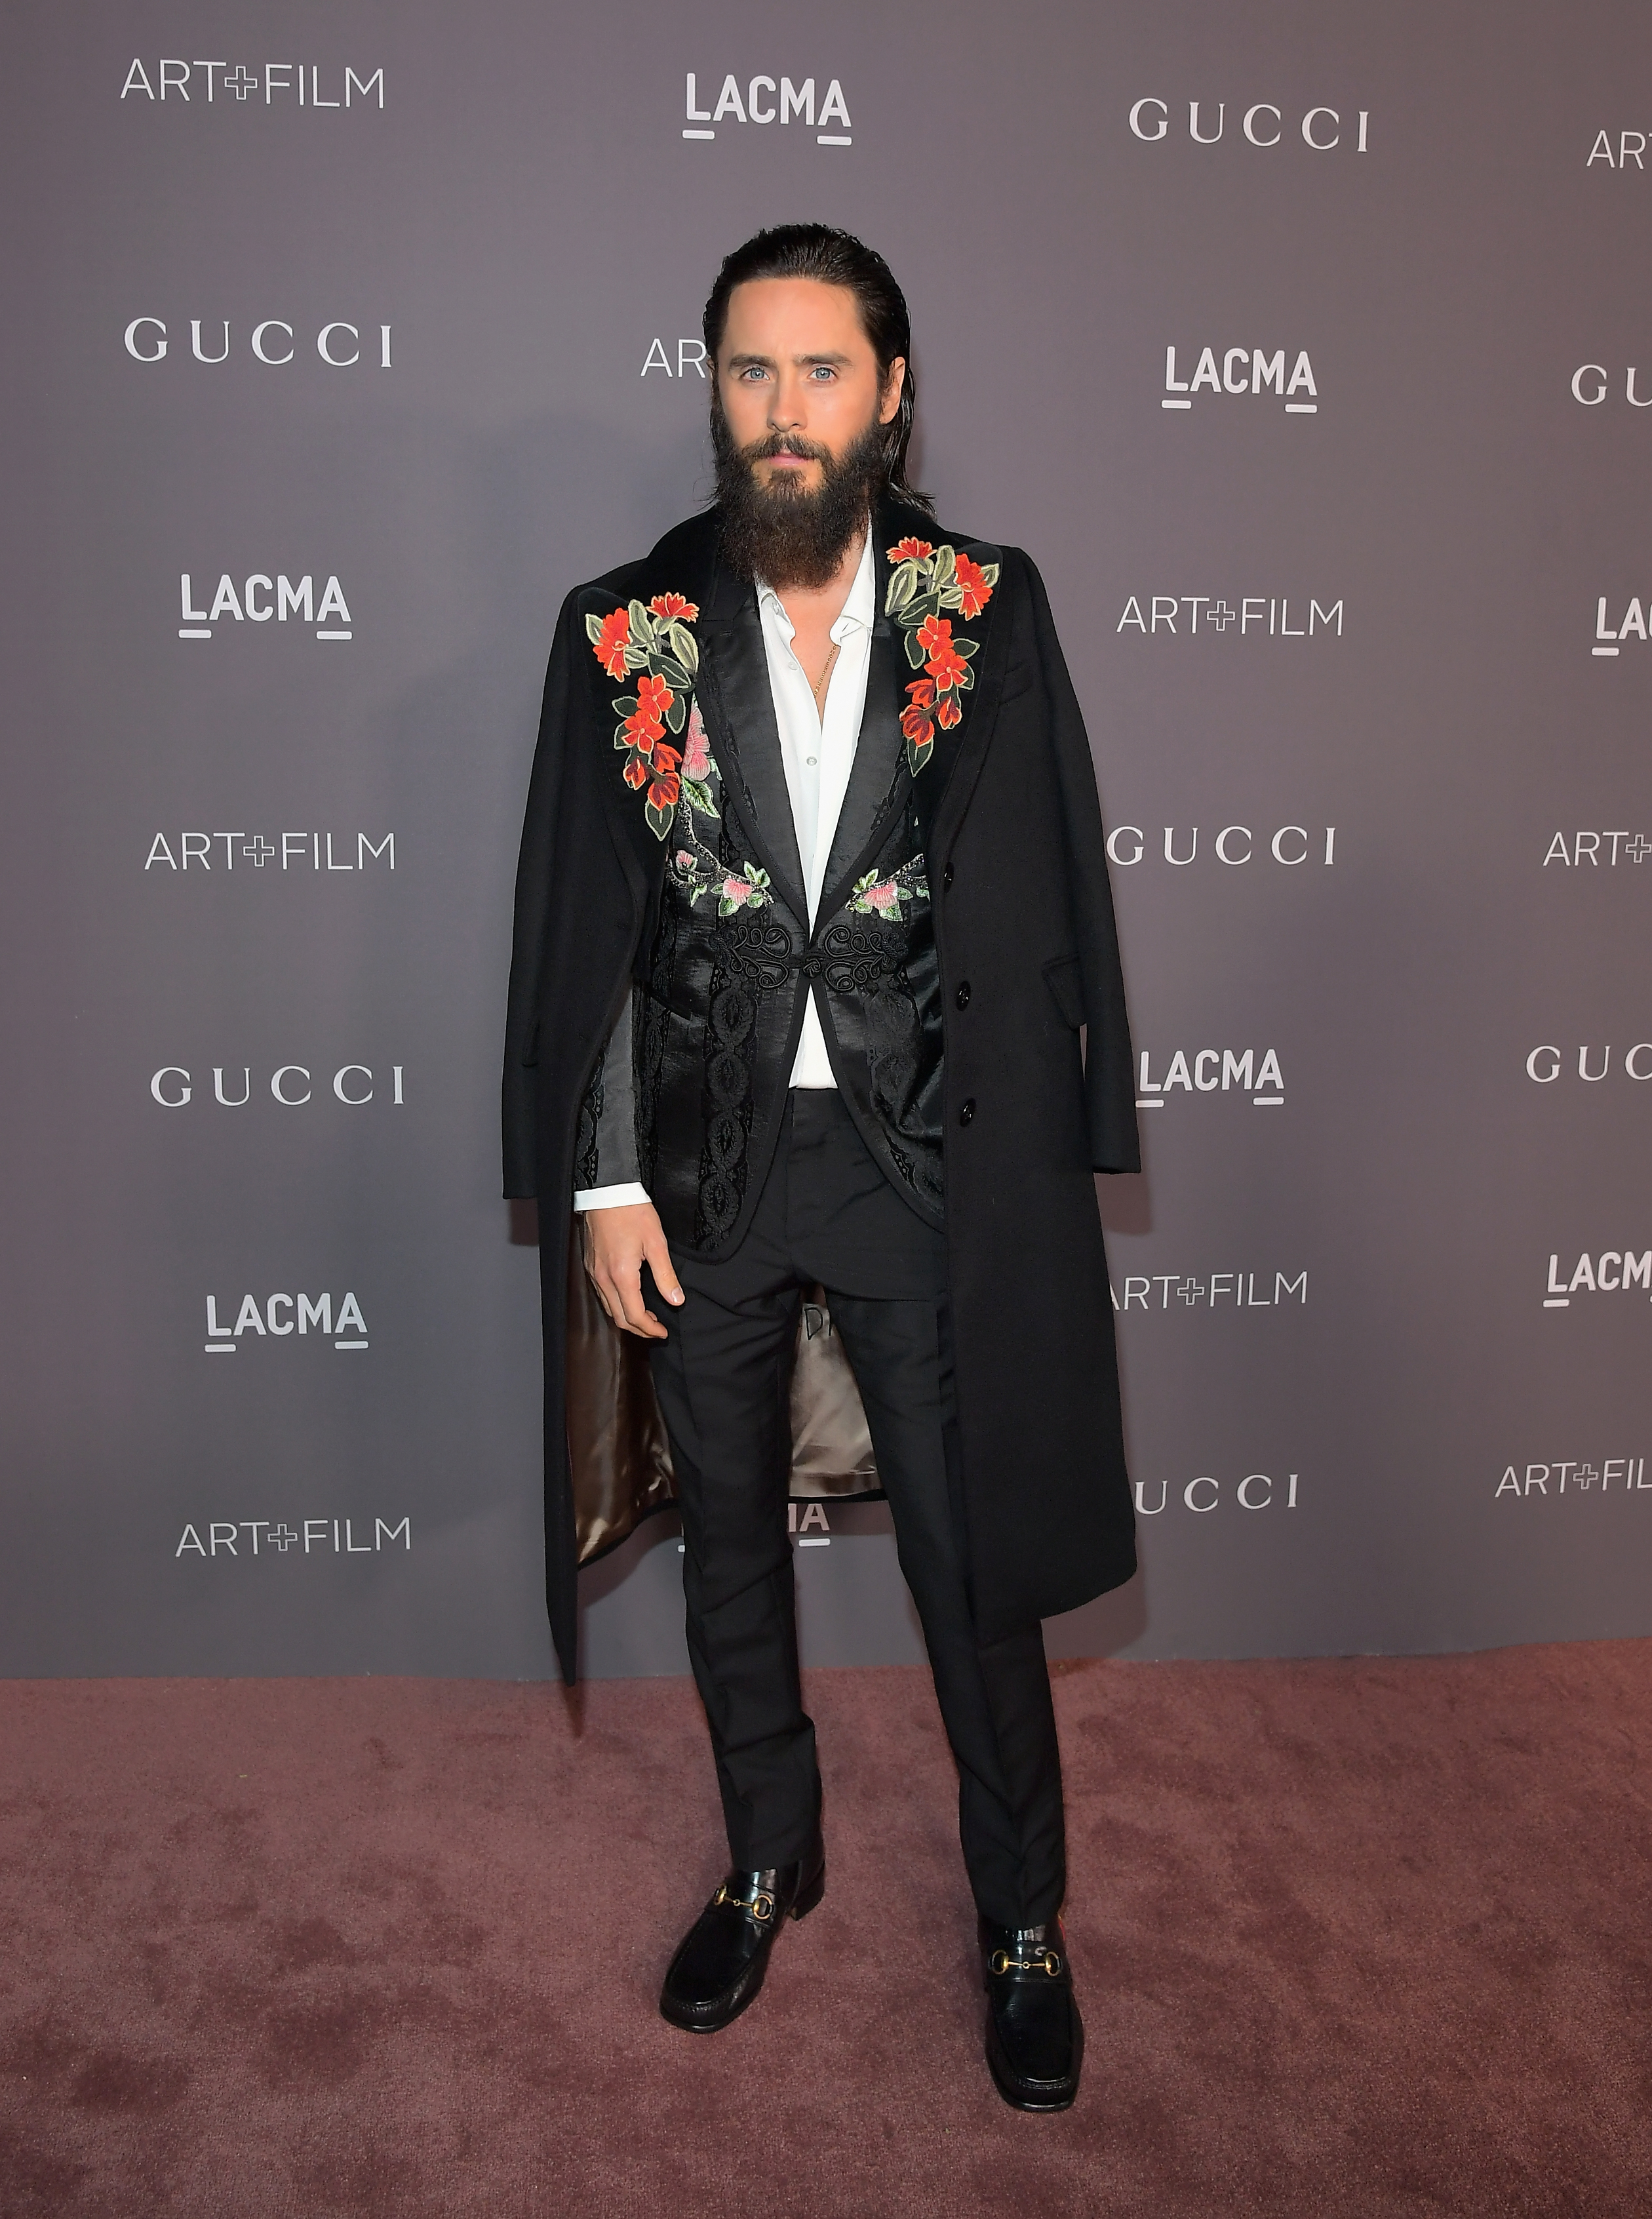 LOS ANGELES, CA - NOVEMBER 04: Actor Jared Leto, wearing Gucci, attends the 2017 LACMA Art + Film Gala Honoring Mark Bradford and George Lucas presented by Gucci at LACMA on November 4, 2017 in Los Angeles, California. (Photo by Charley Gallay/Getty Images for LACMA)